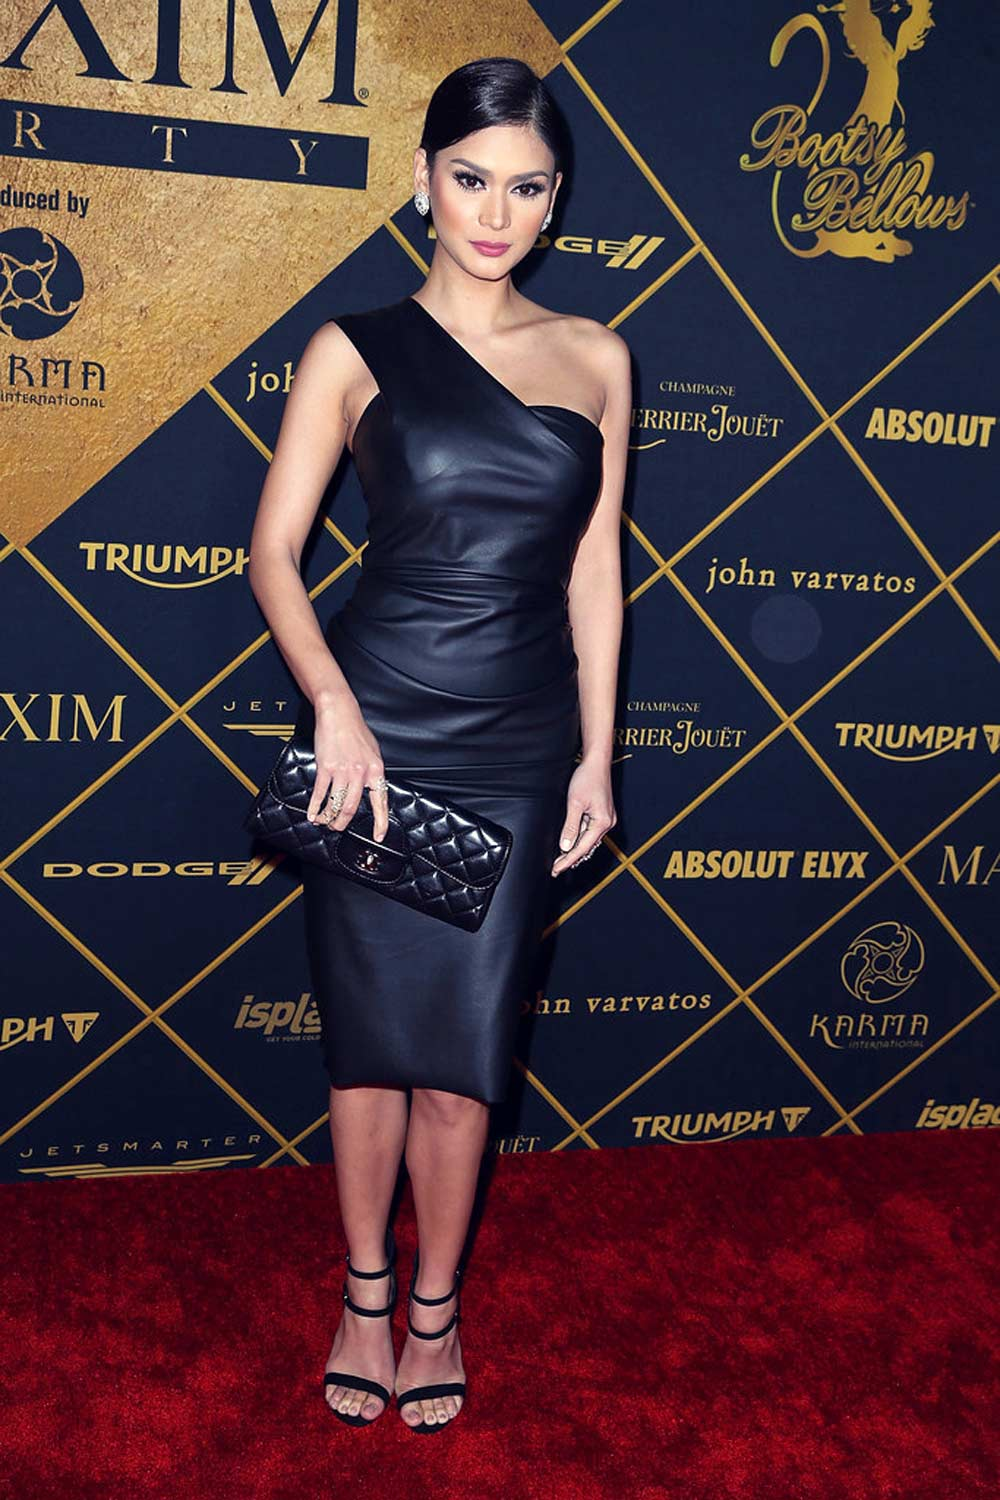 Pia Wurtzbach Attends The Rolling Stone Live Sf With